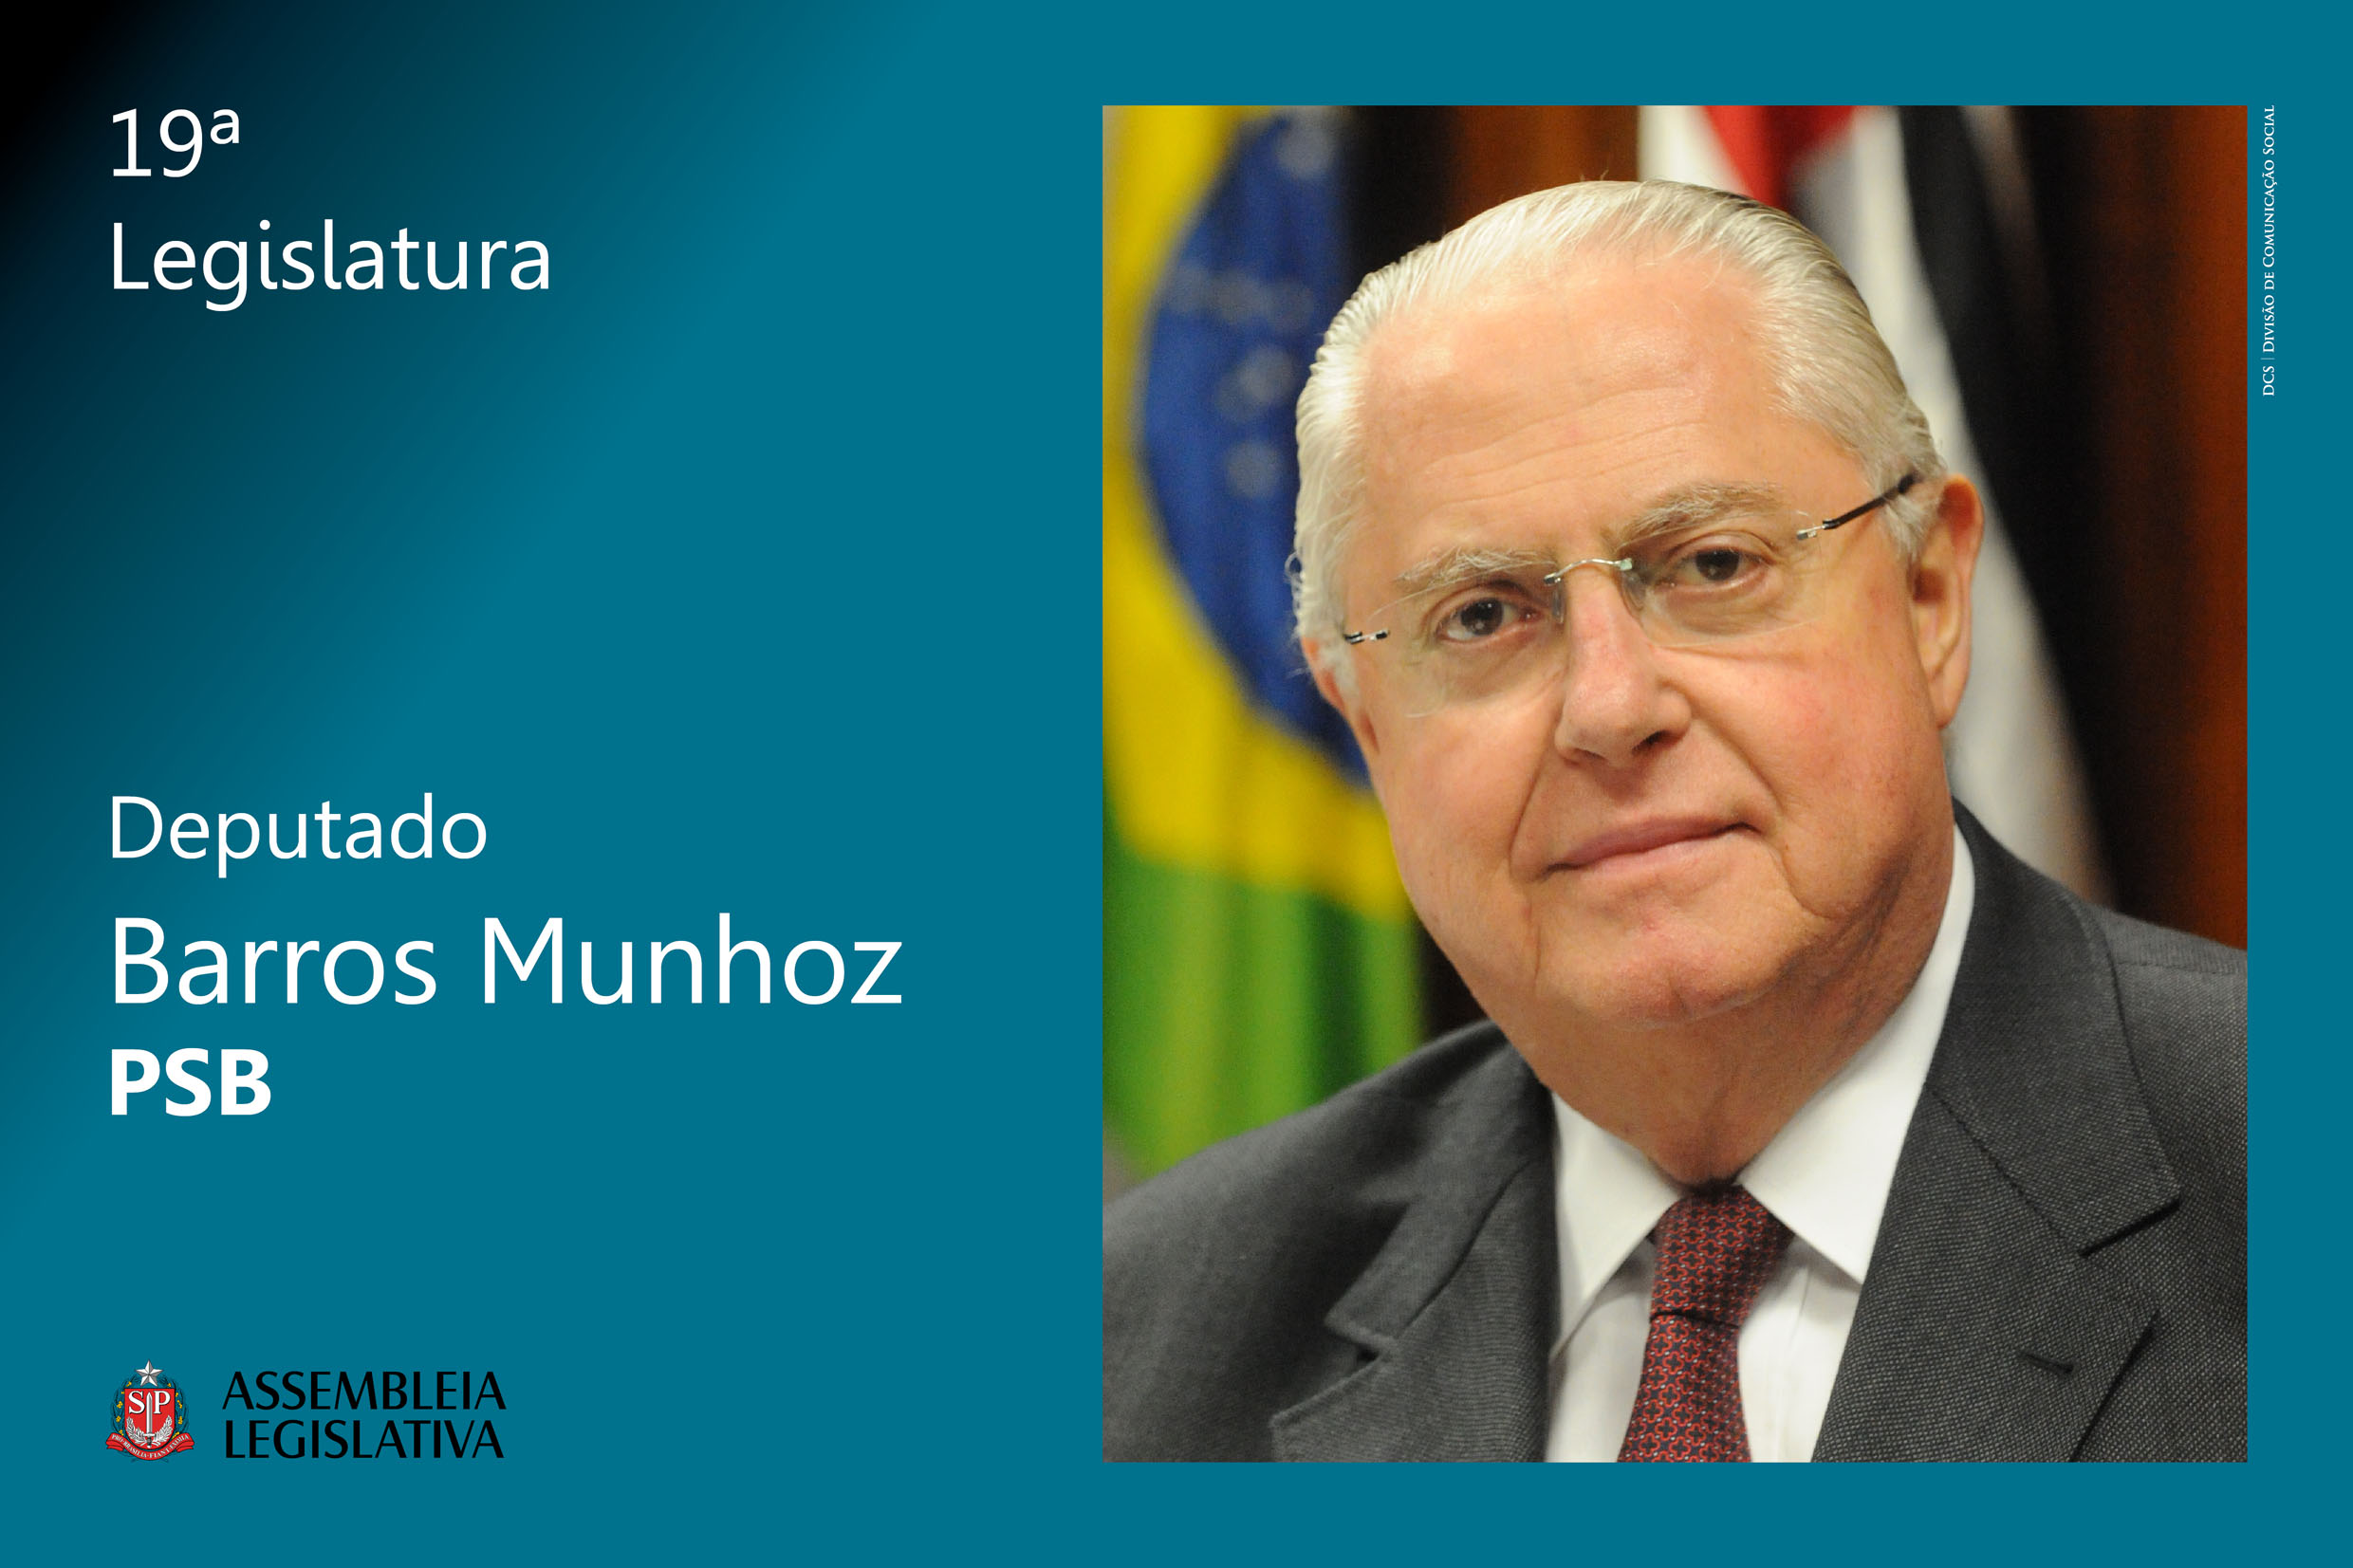 Barros Munhoz (PSB)<a style='float:right' href='https://www3.al.sp.gov.br/repositorio/noticia/N-03-2019/fg231337.jpg' target=_blank><img src='/_img/material-file-download-white.png' width='14px' alt='Clique para baixar a imagem'></a>